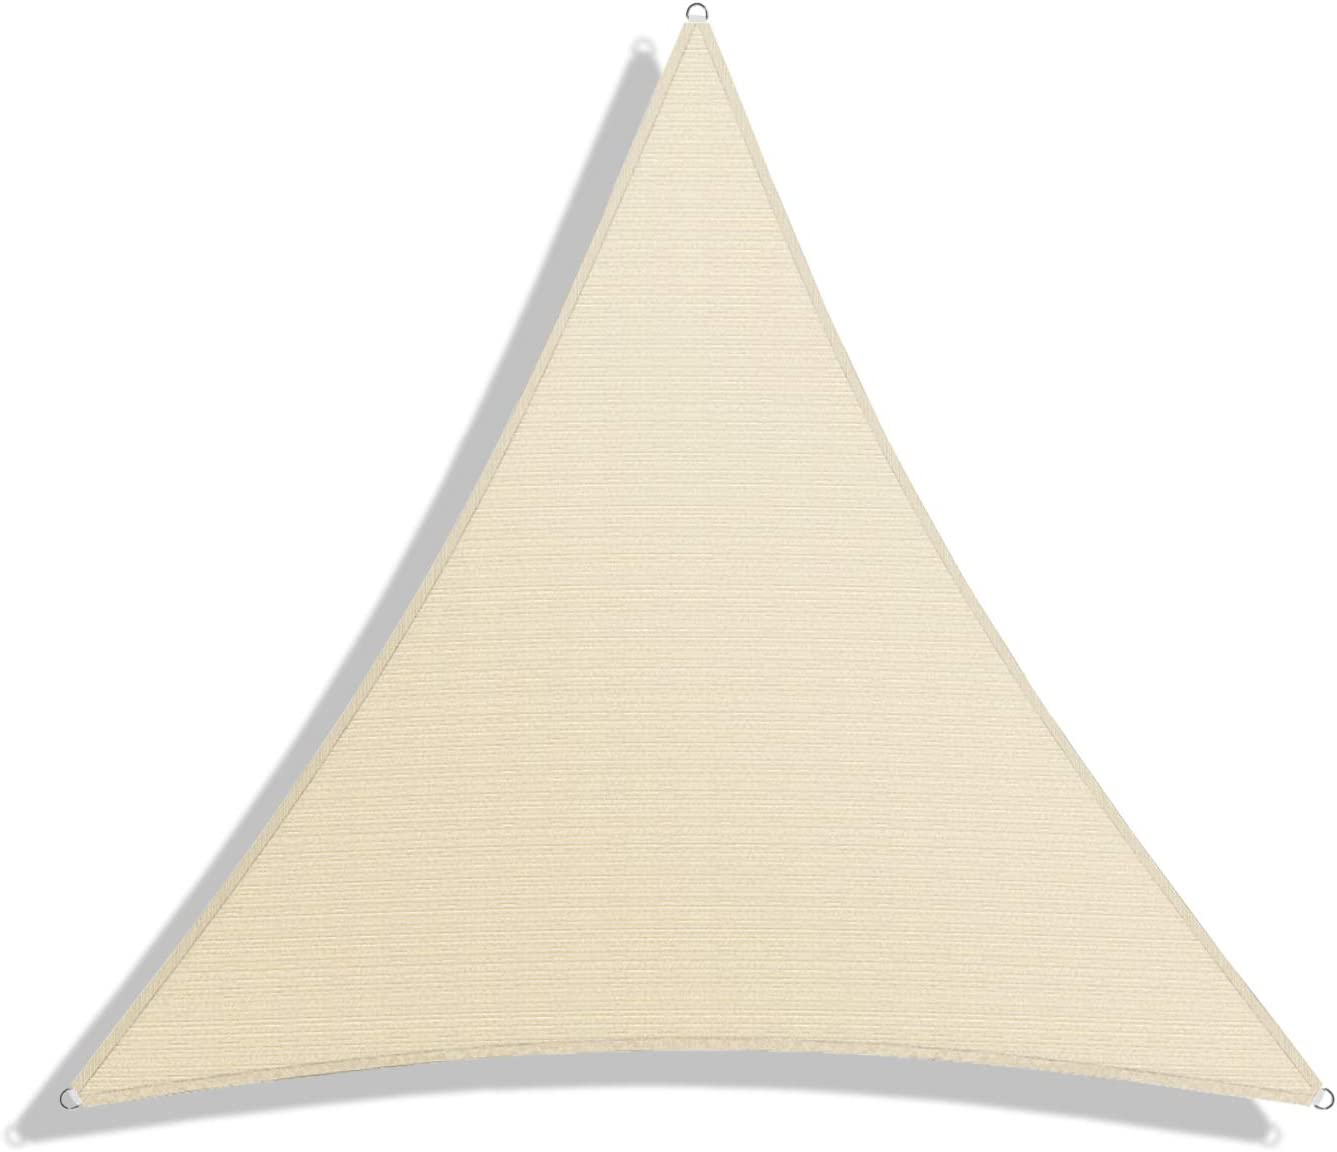 Windscreen4less Sun Shade Sail for Outdoor Patio Backyard UV Block Awning with Steel D-Rings 13ft x 13ft x 13ft Beige Sand Triangle – Custom